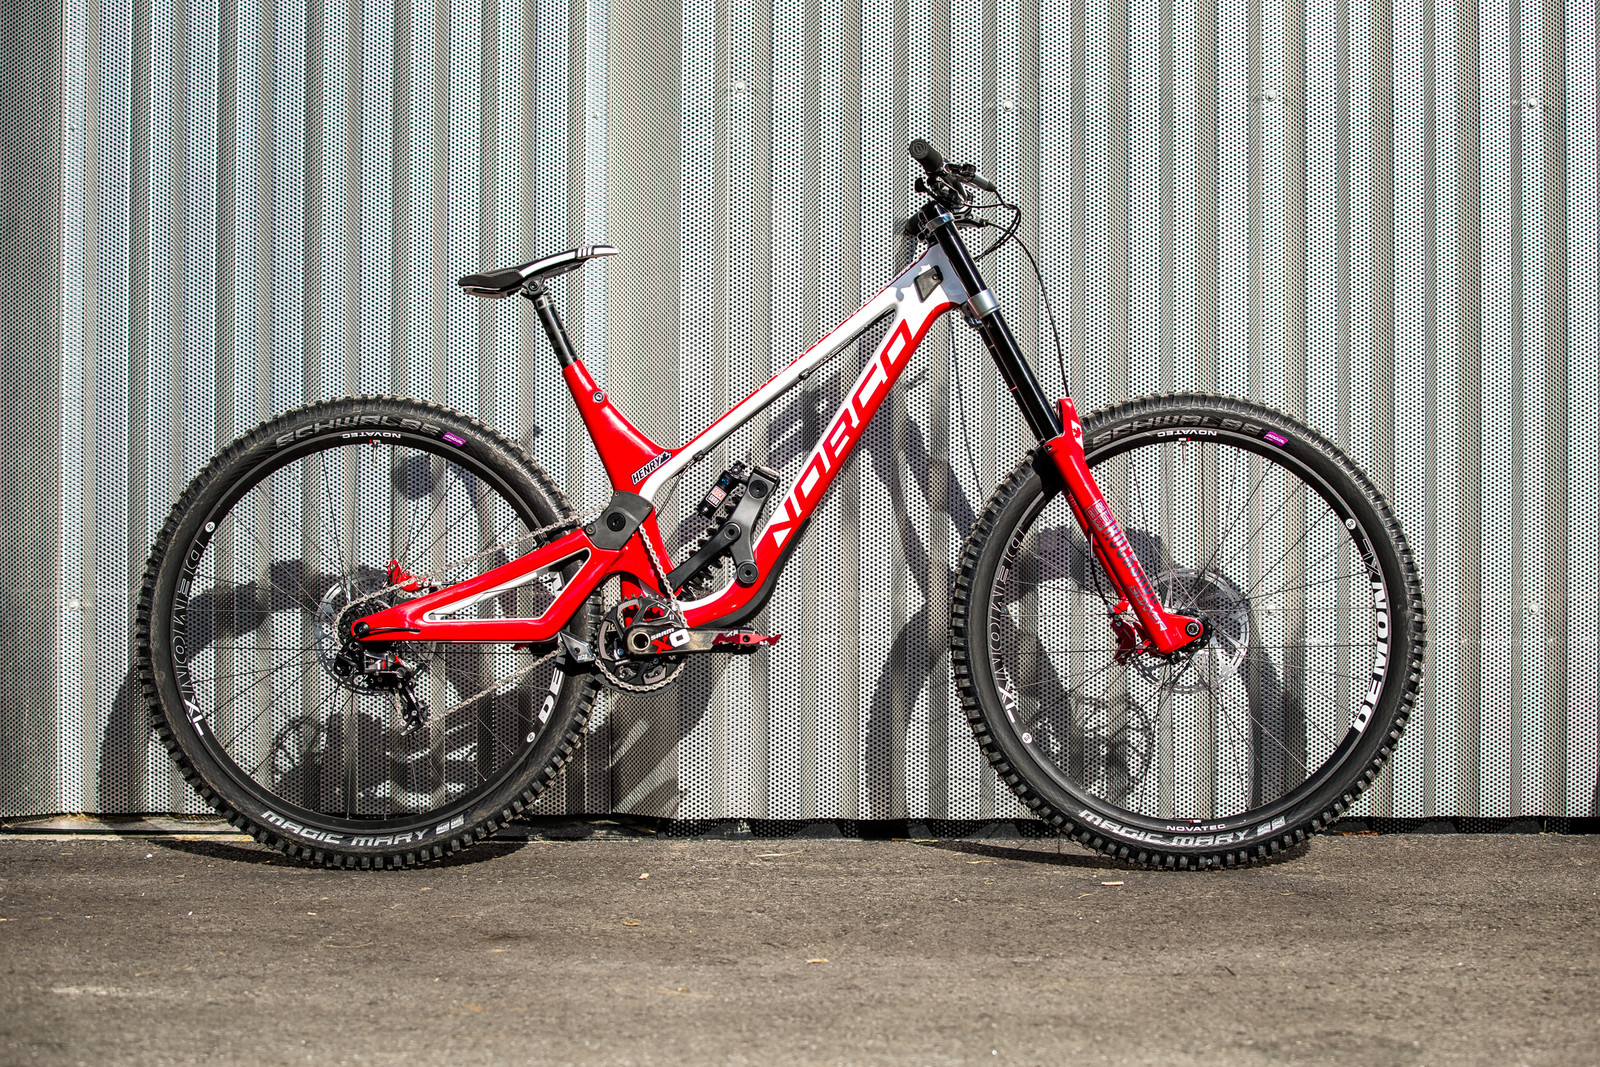 WORLD CHAMPS BIKE - Henry Fitzgerald's Norco Aurum HSP - WORLD CHAMPS BIKES - Sam Blenkinsop and Henry Fitzgerald's Norco Aurum HSP's - Mountain Biking Pictures - Vital MTB